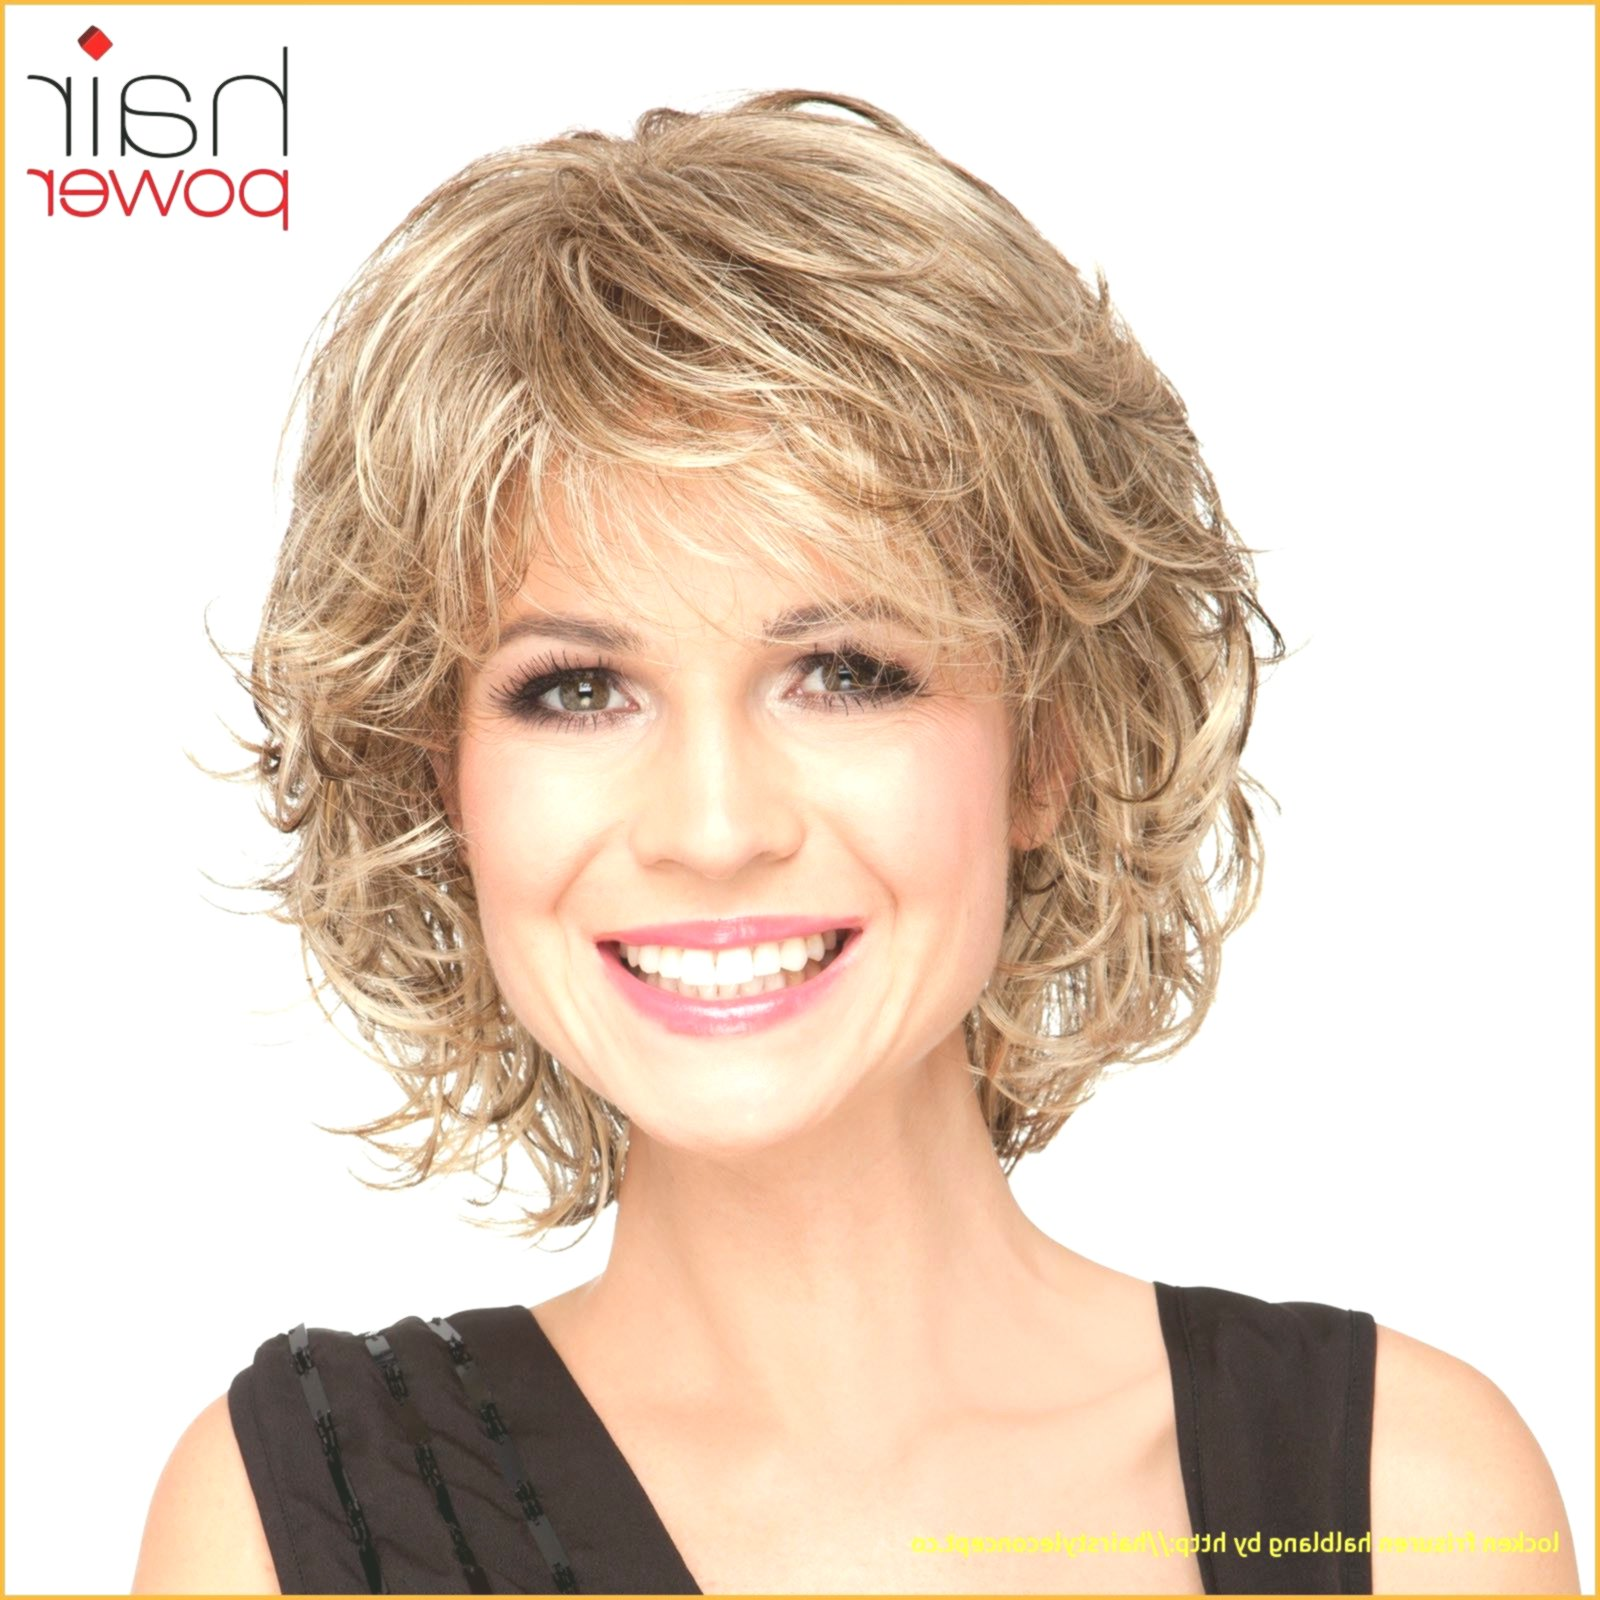 beautiful hairstyles natural curls design-Cool hairstyles nature curls reviews